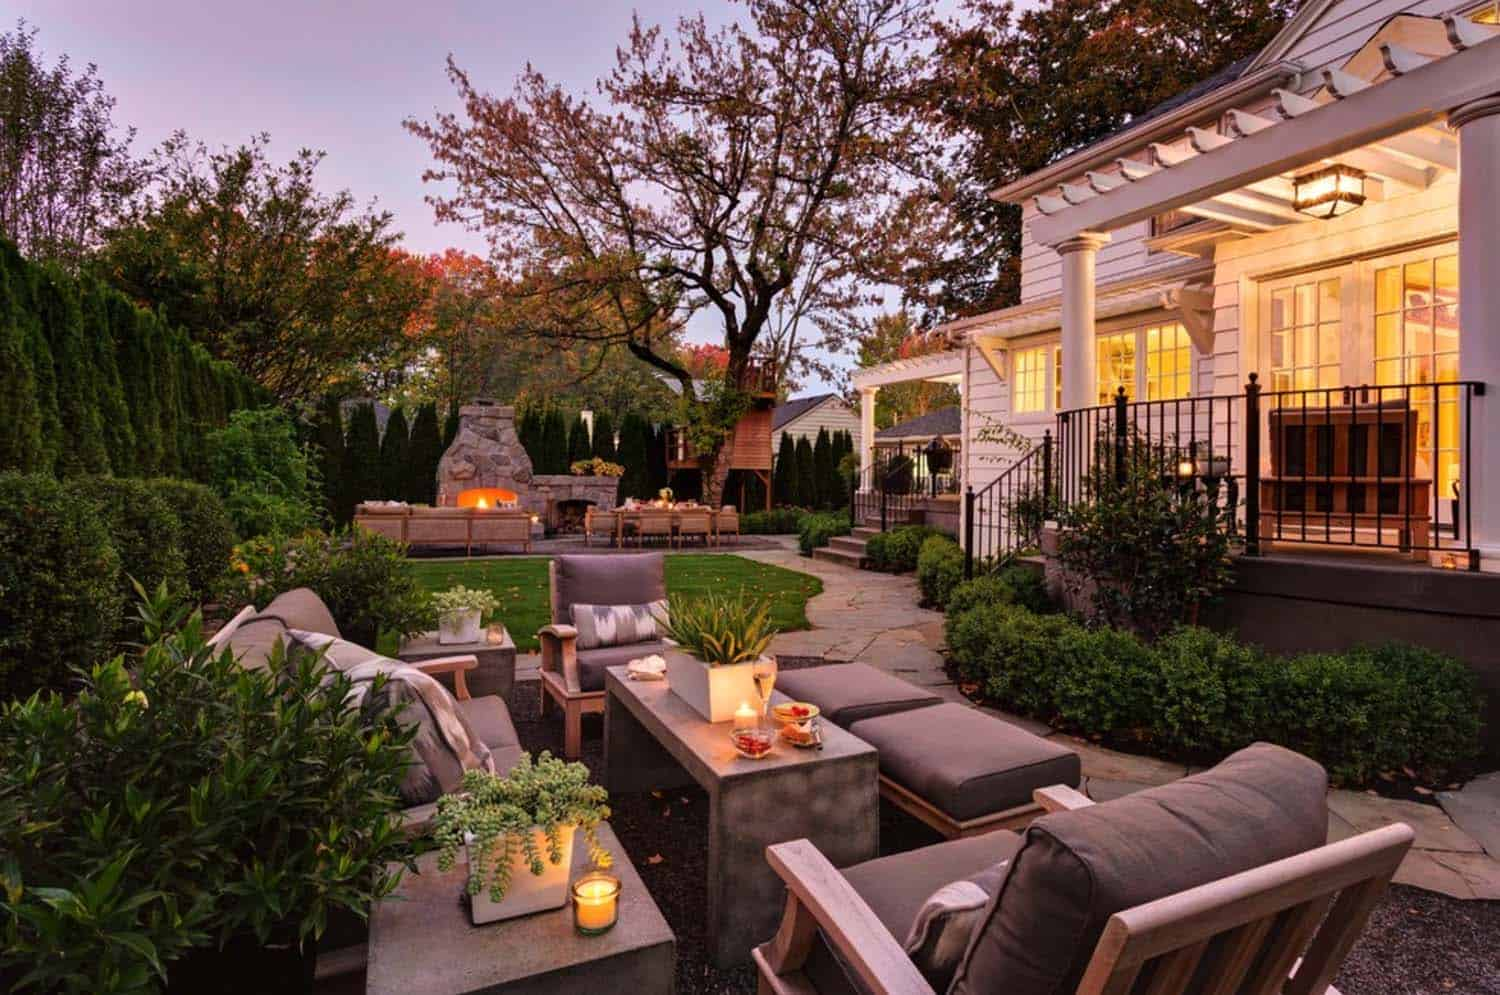 44 Traditional outdoor patio designs to capture your ... on Back Garden Patio Ideas  id=34849